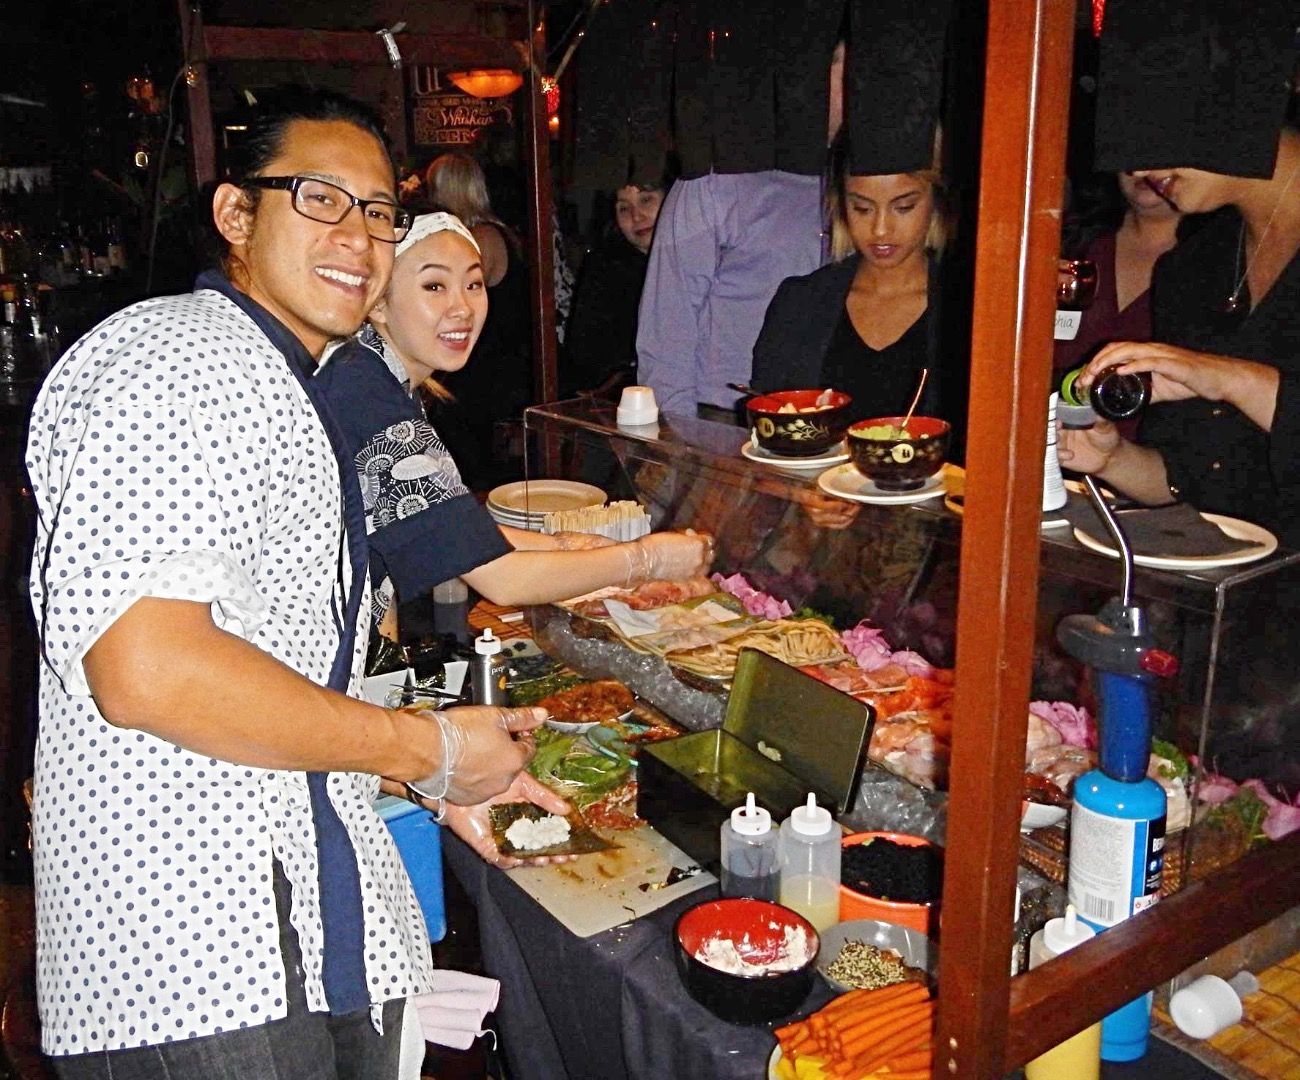 Ramon at the sushi cart